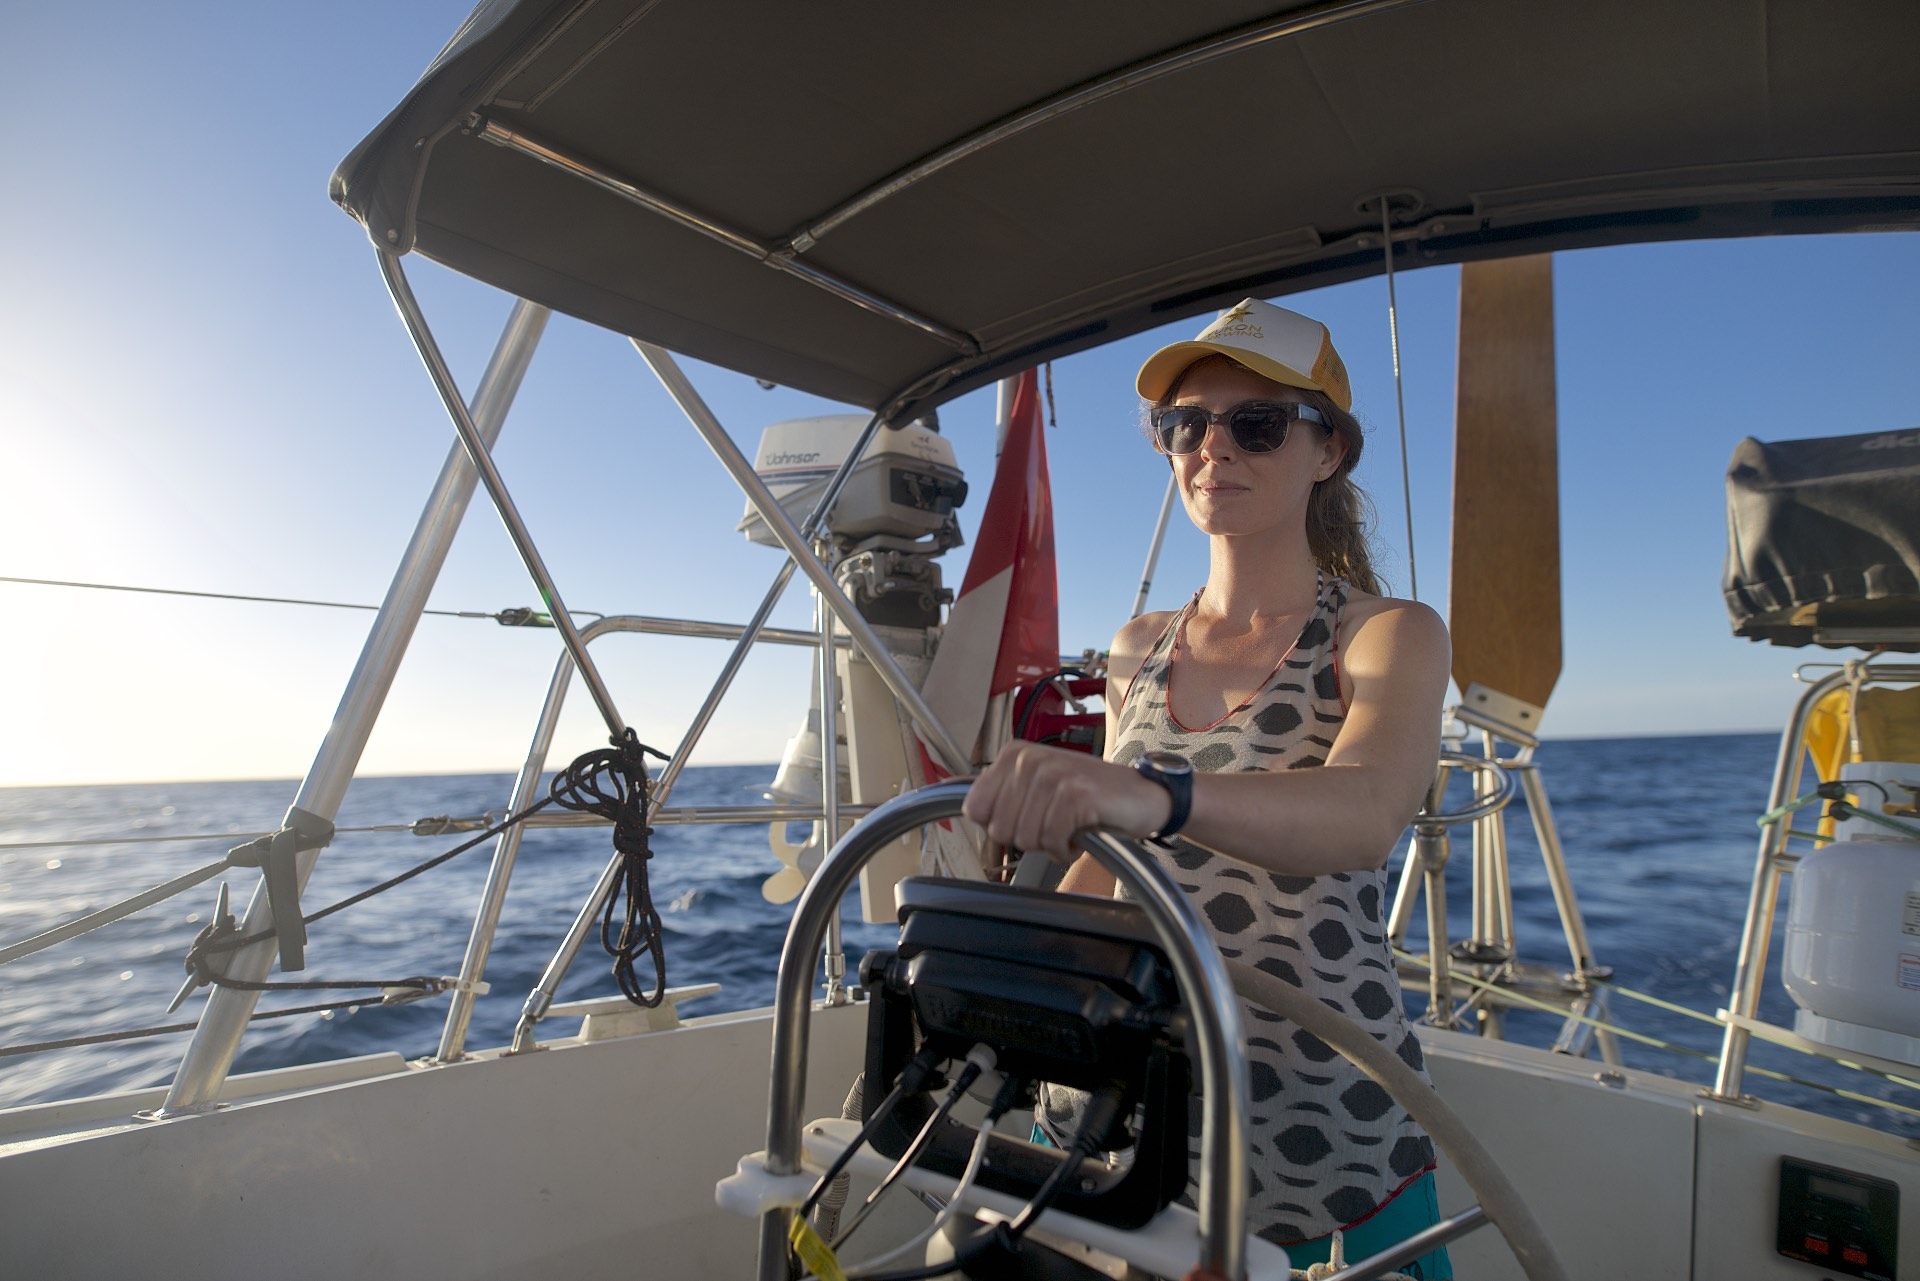 Sailing with Fiona and Robin on Monarch, on the Sea of Cortez.